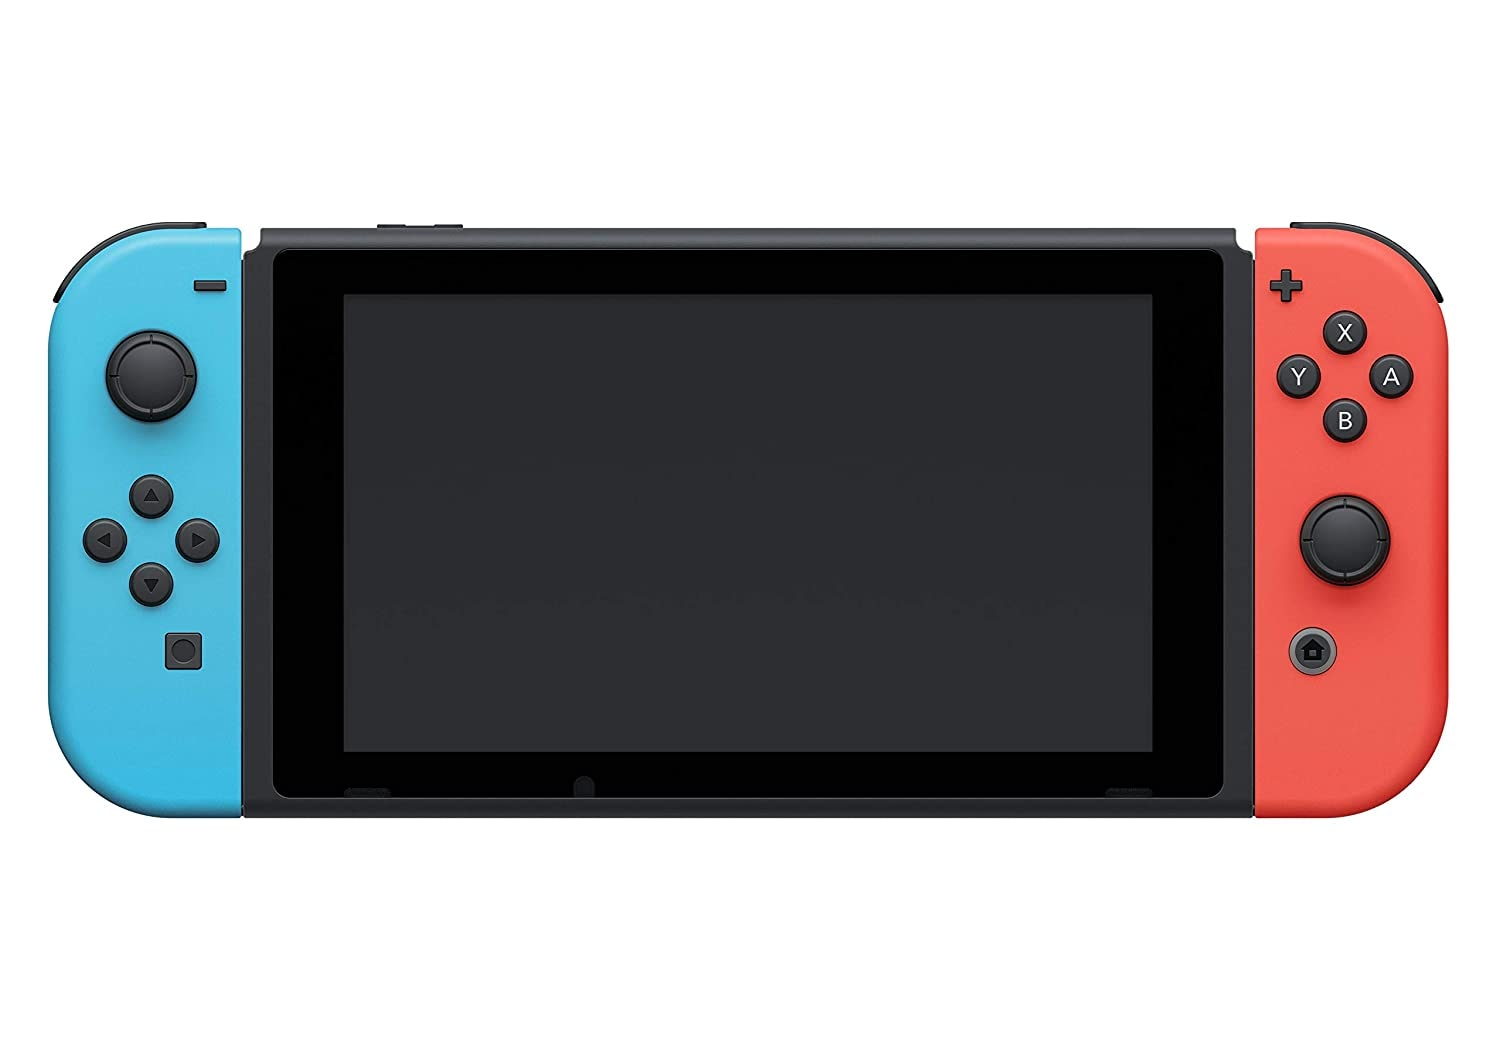 Nintendo Switch with Neon Blue and Neon Red Joy-Con Touchscreen LCD Display NVIDIA Custom Tegra Processor Carrying Case Multi-Colored - 3